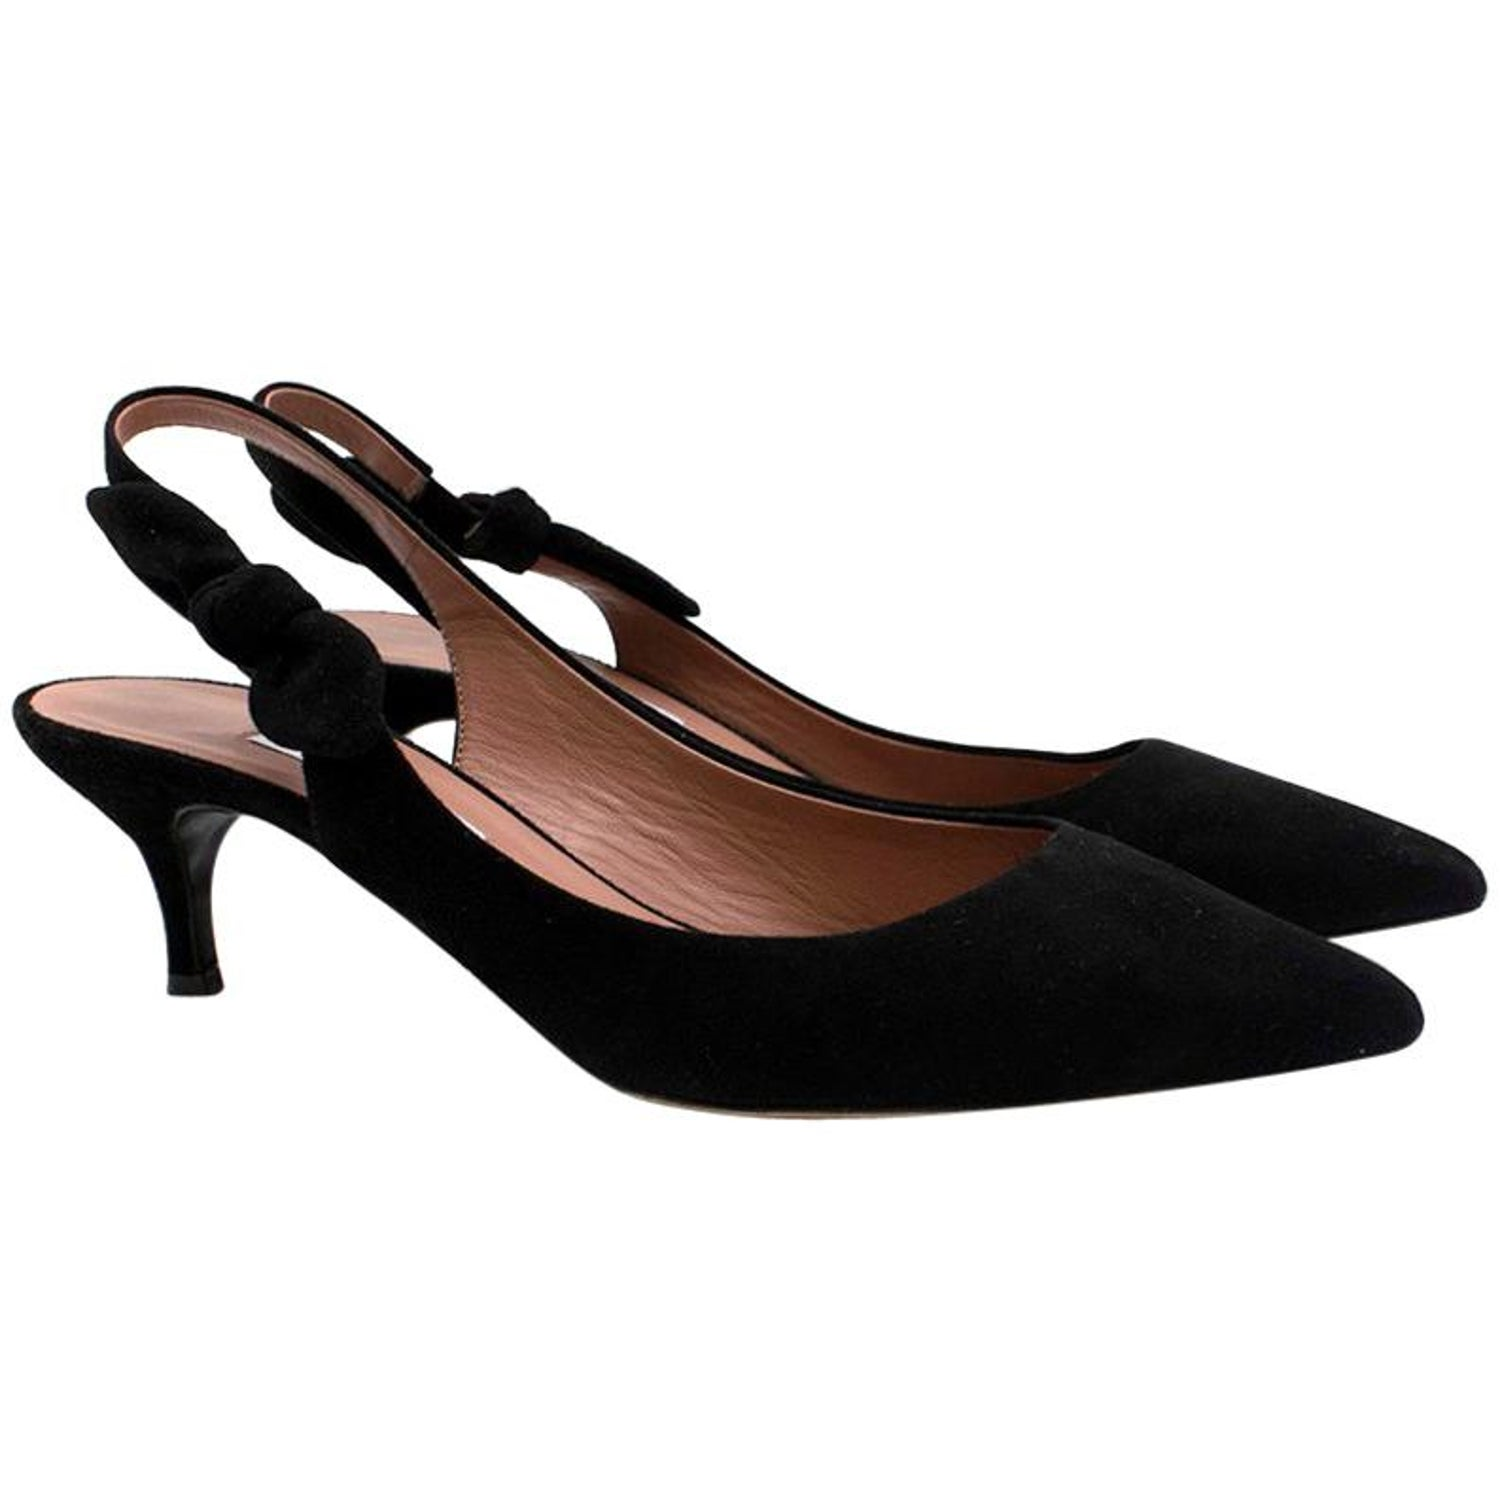 1a9f81b01 Tabitha Simmons Rise black suede point-toe pumps US 9 For Sale at 1stdibs